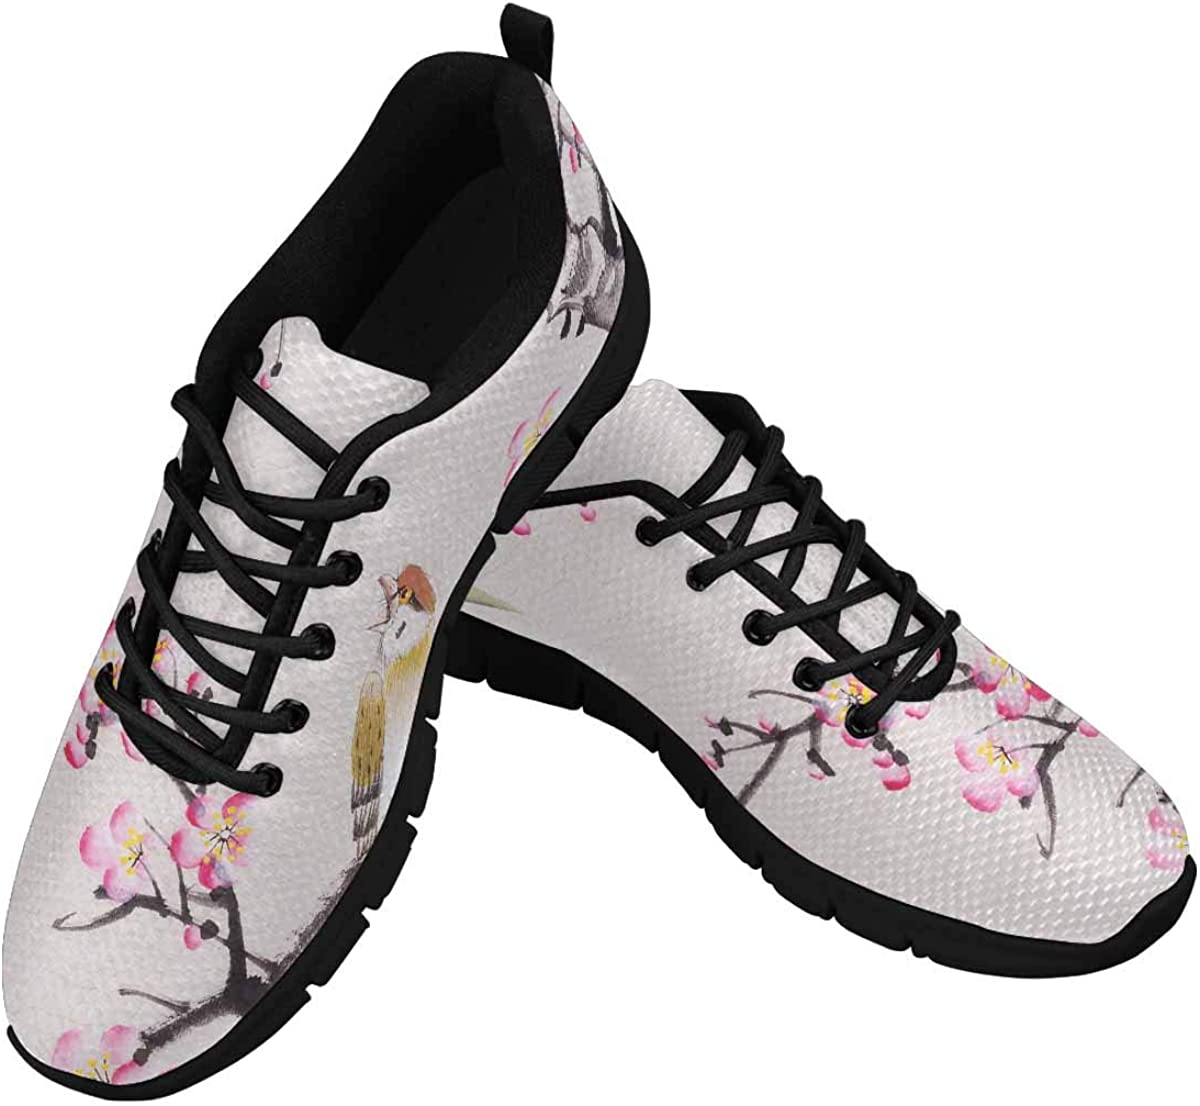 InterestPrint Chinese Painting of Flowers and Bird Women's Athletic Mesh Breathable Casual Sneaker